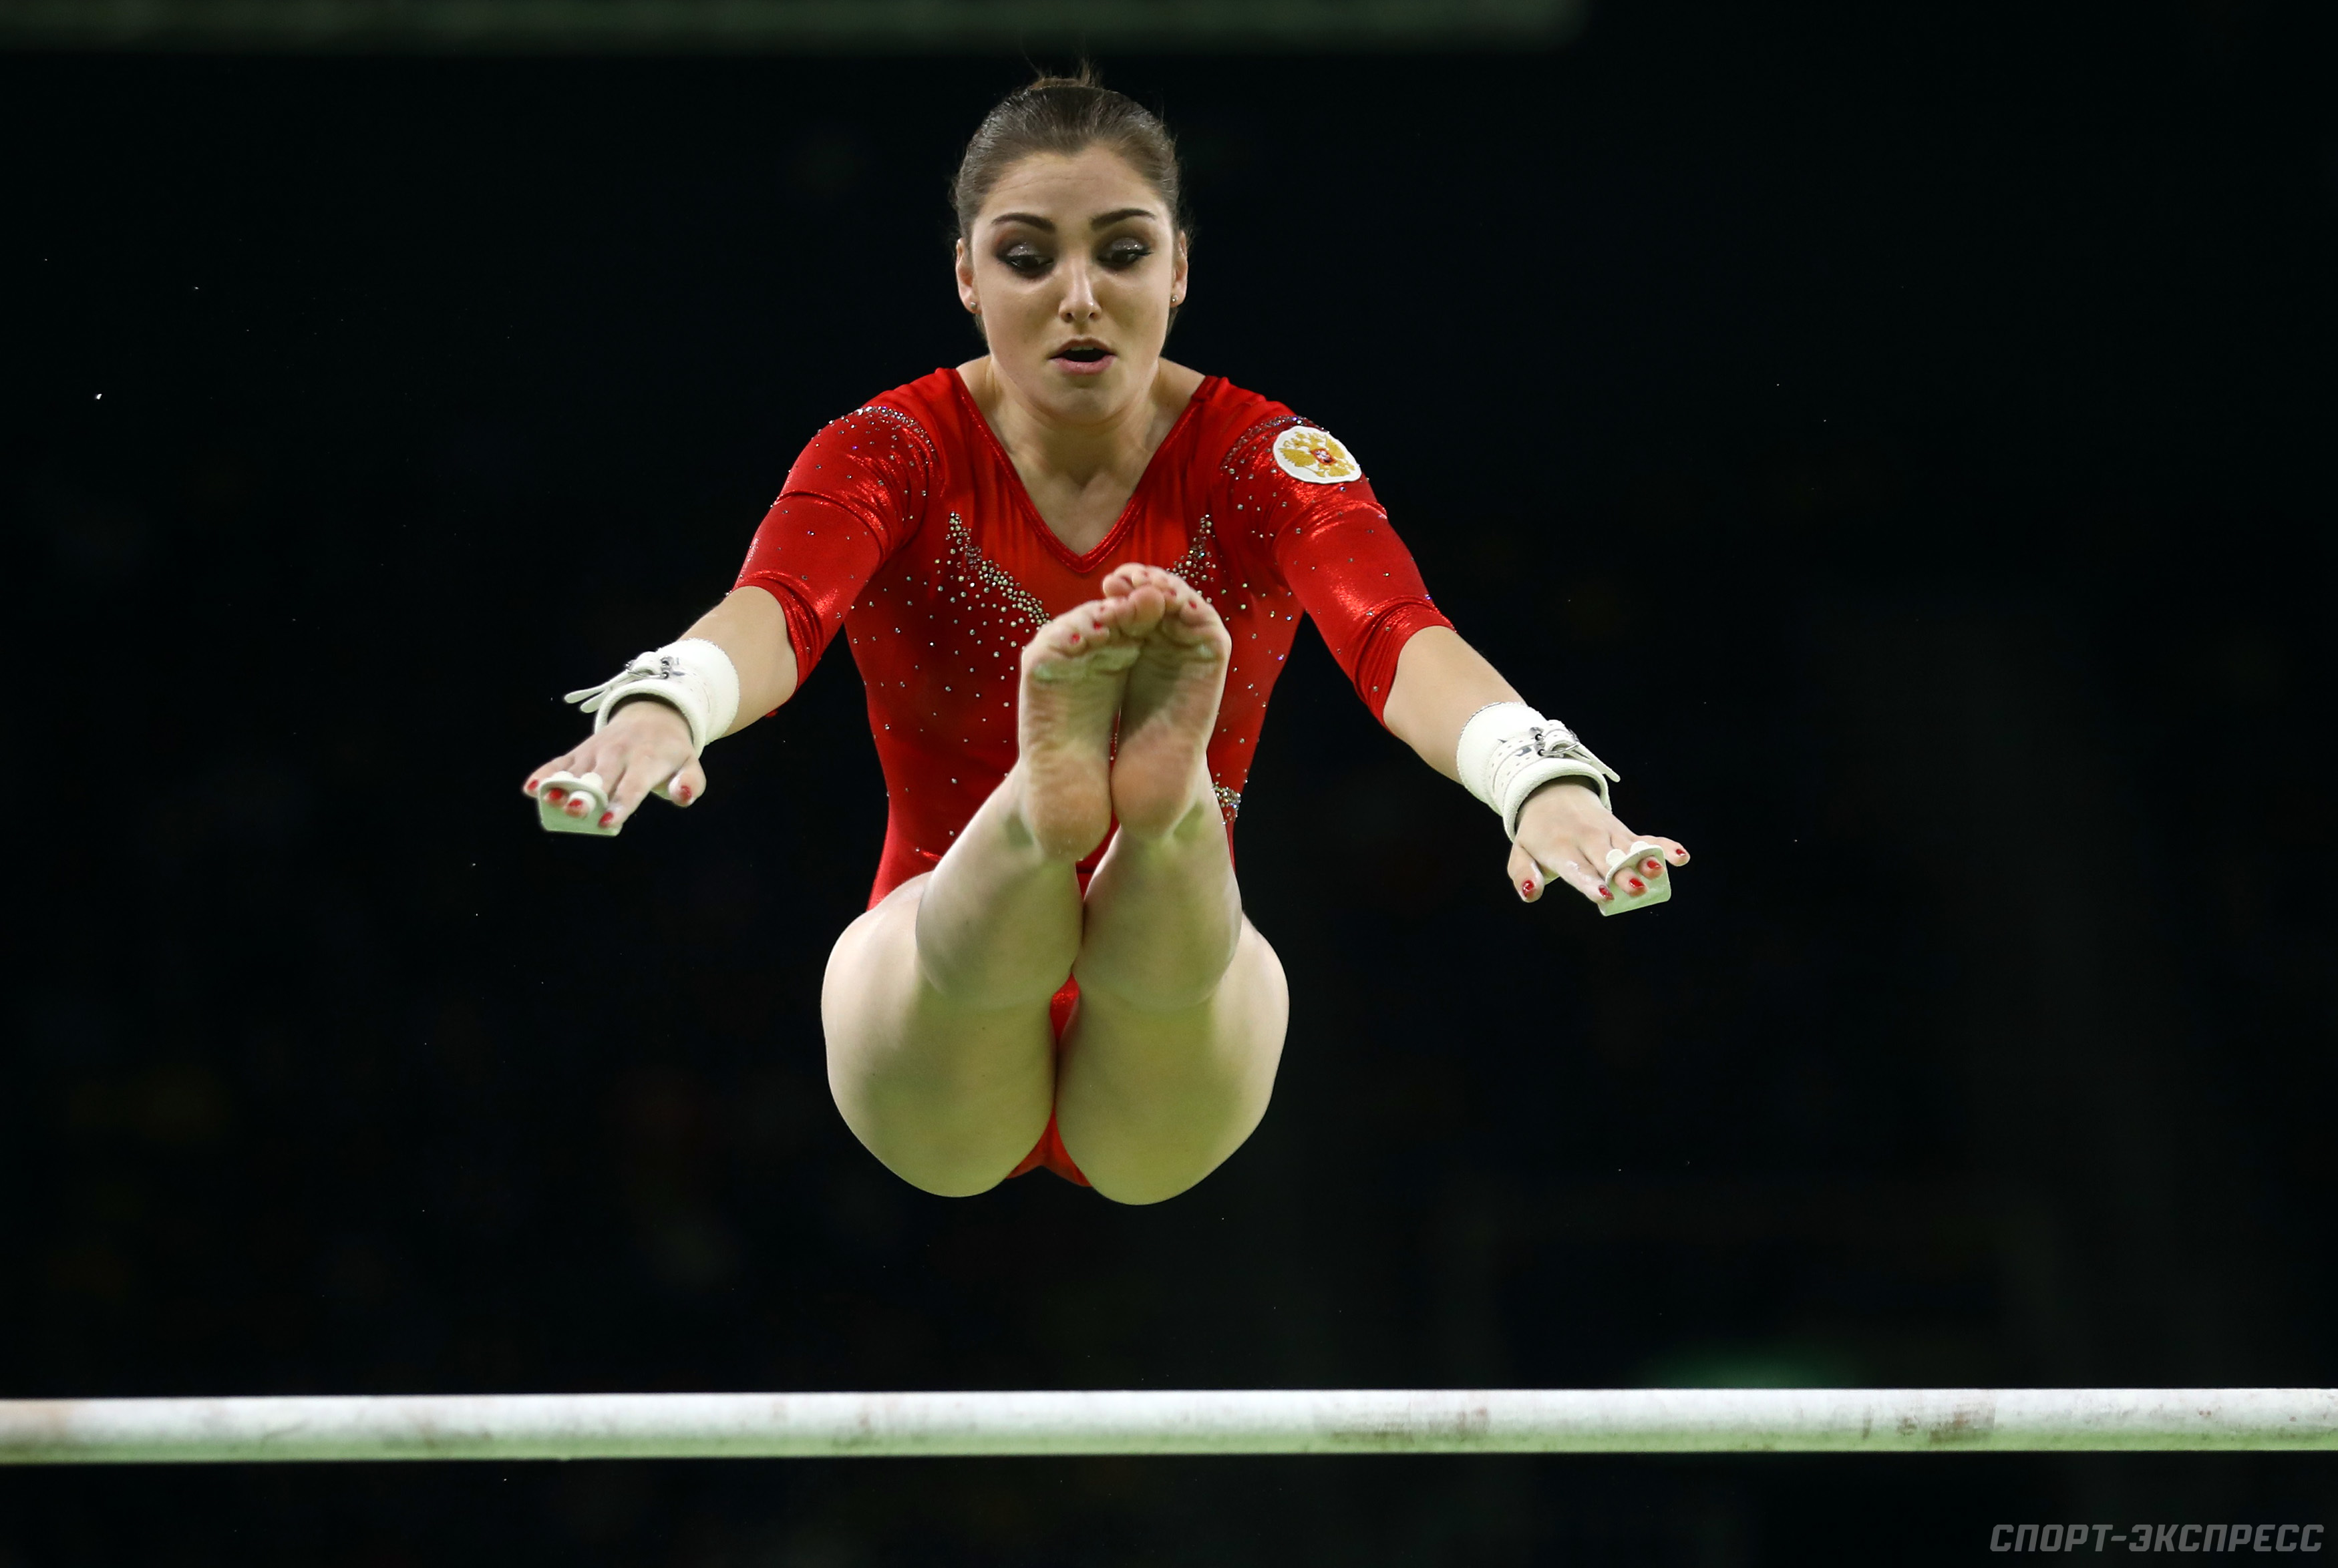 Aliya Mustafina Nude Photos 20